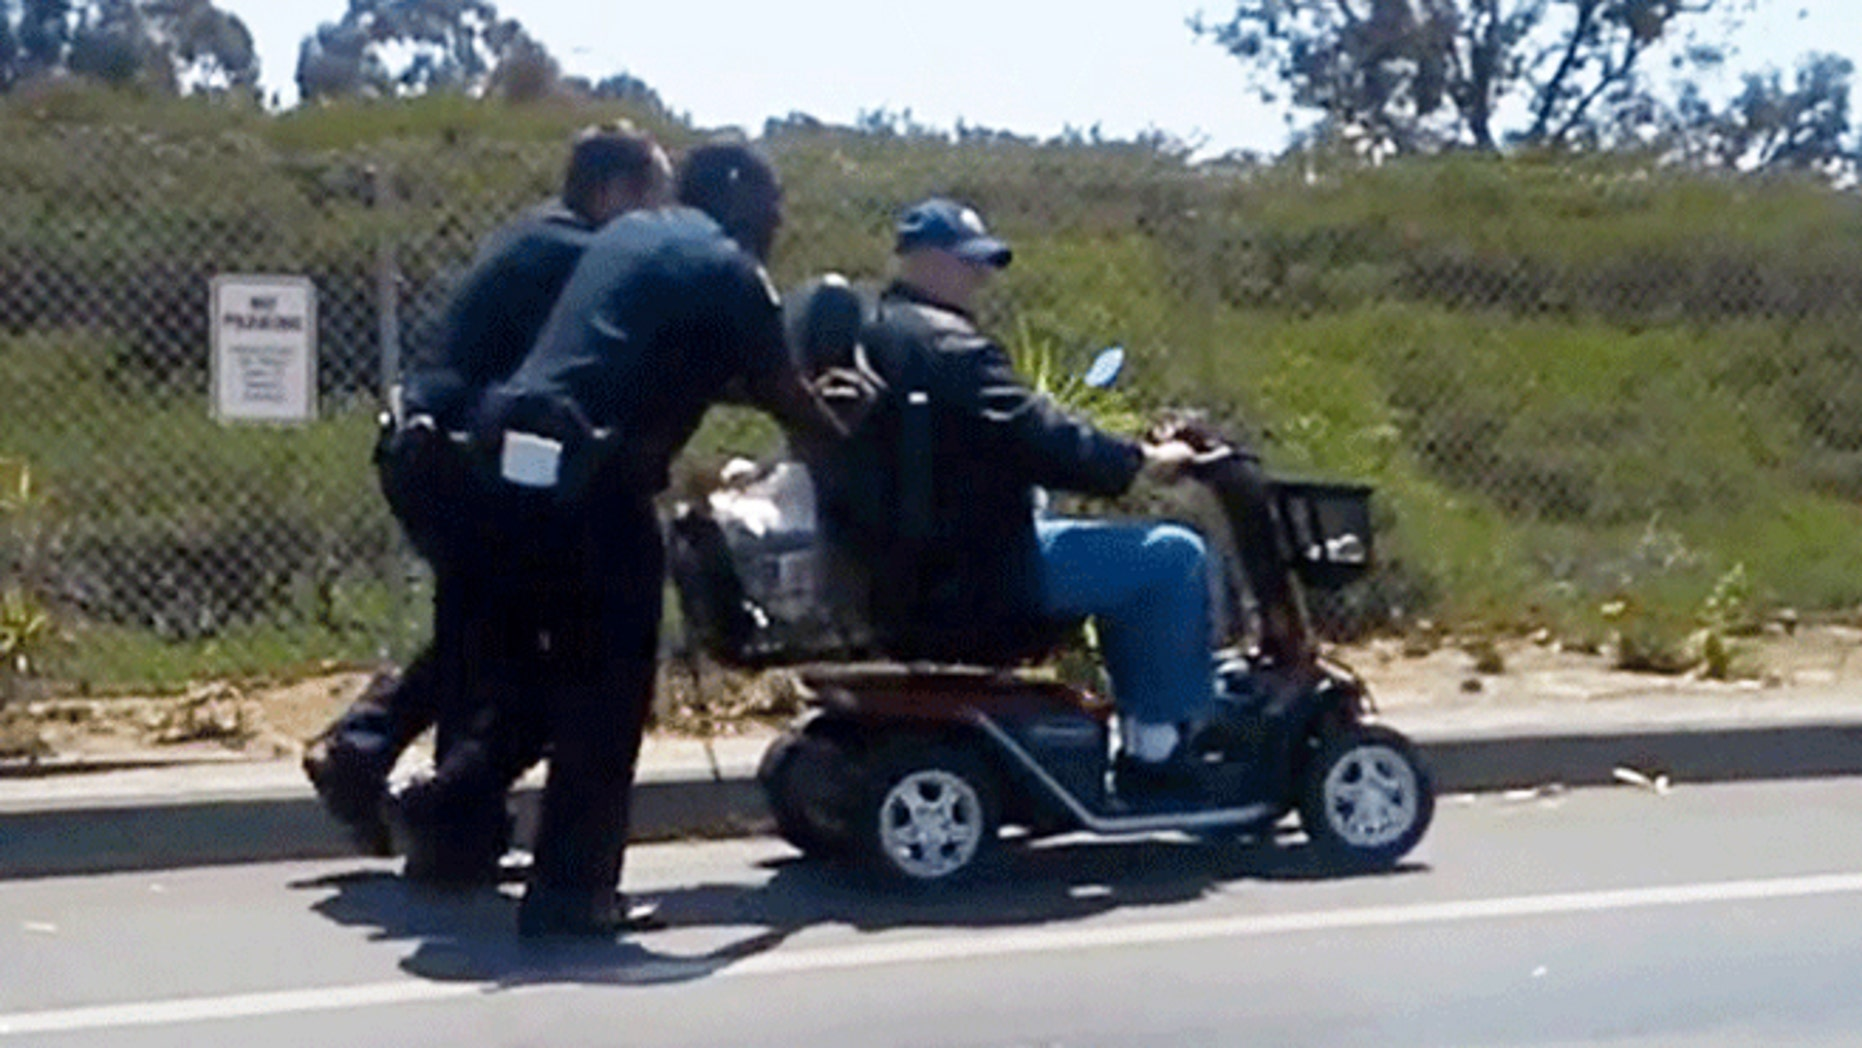 Video shows officers pushing disabled veteran after his scooter lost power.